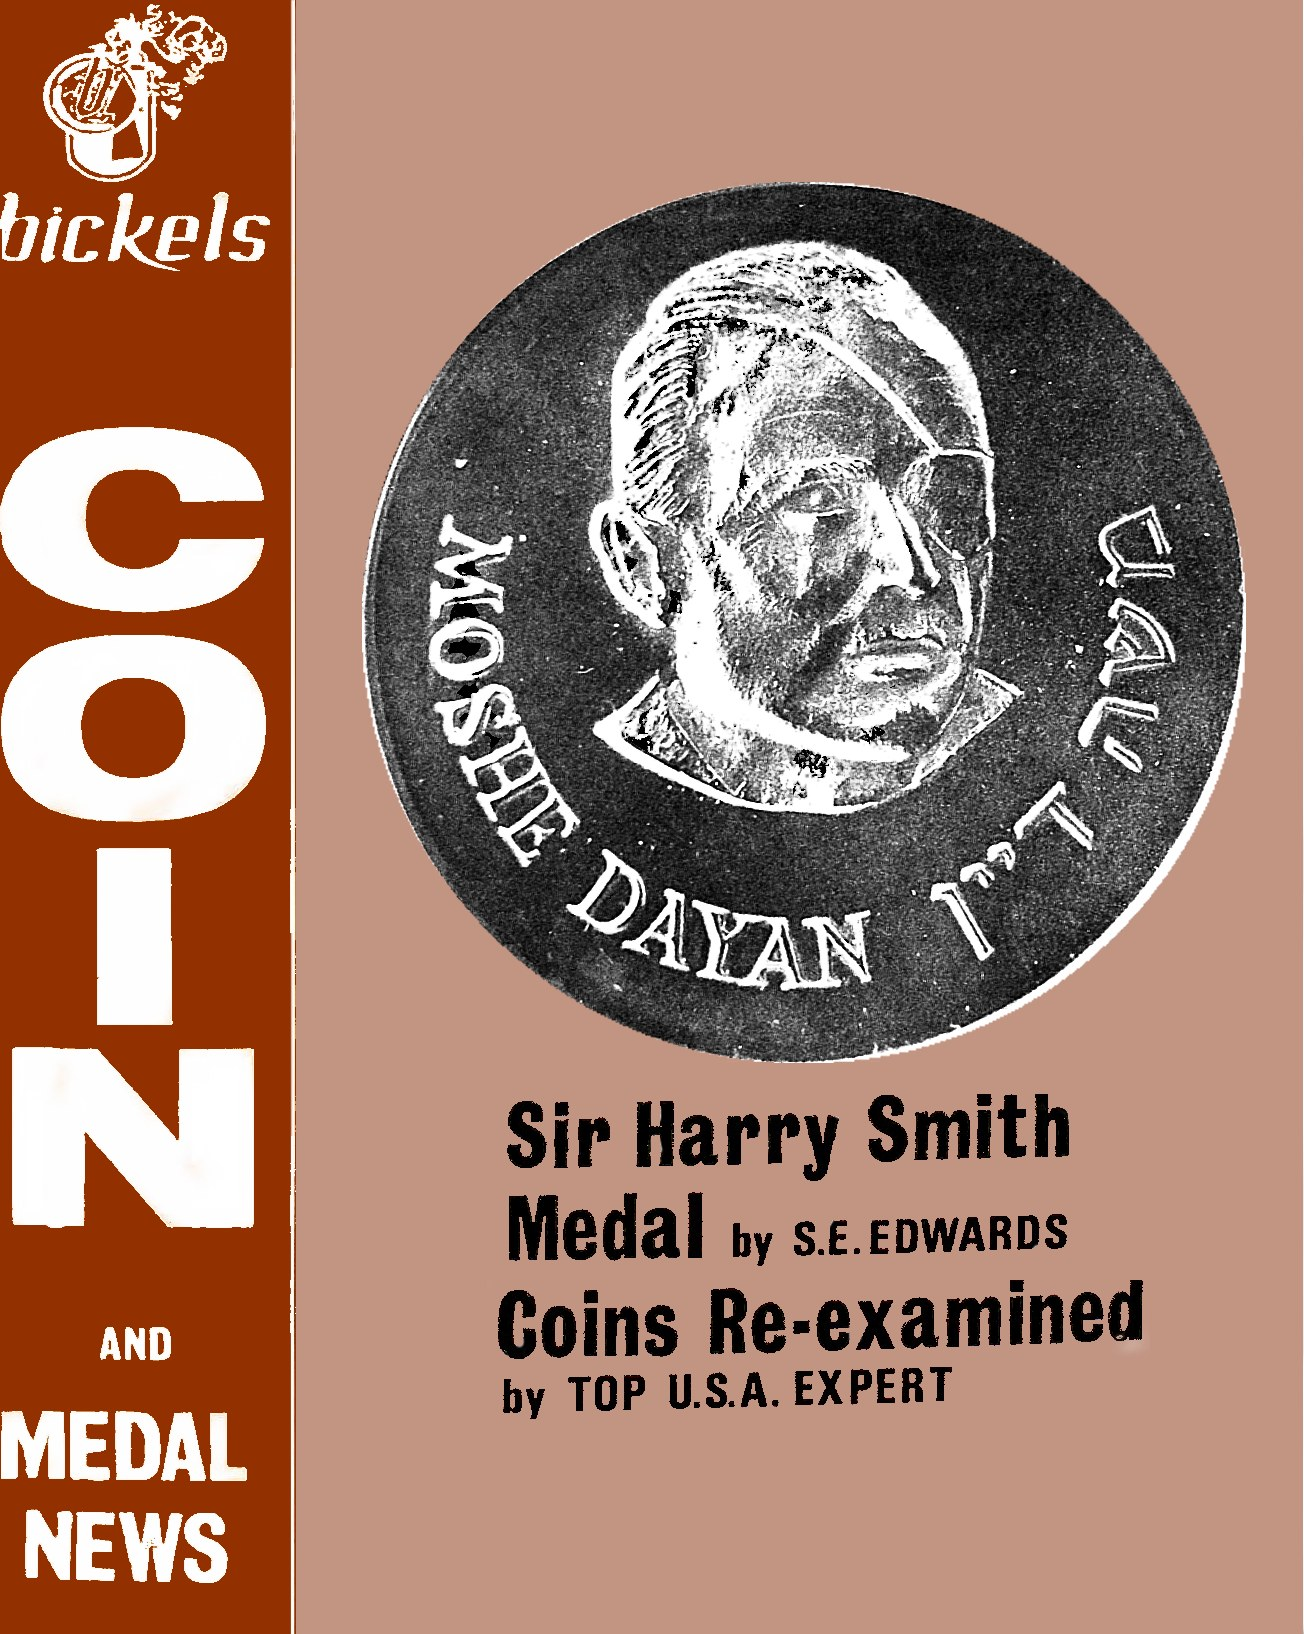 Bickels Coin & Medal News October 1967 Vol 3 No 4